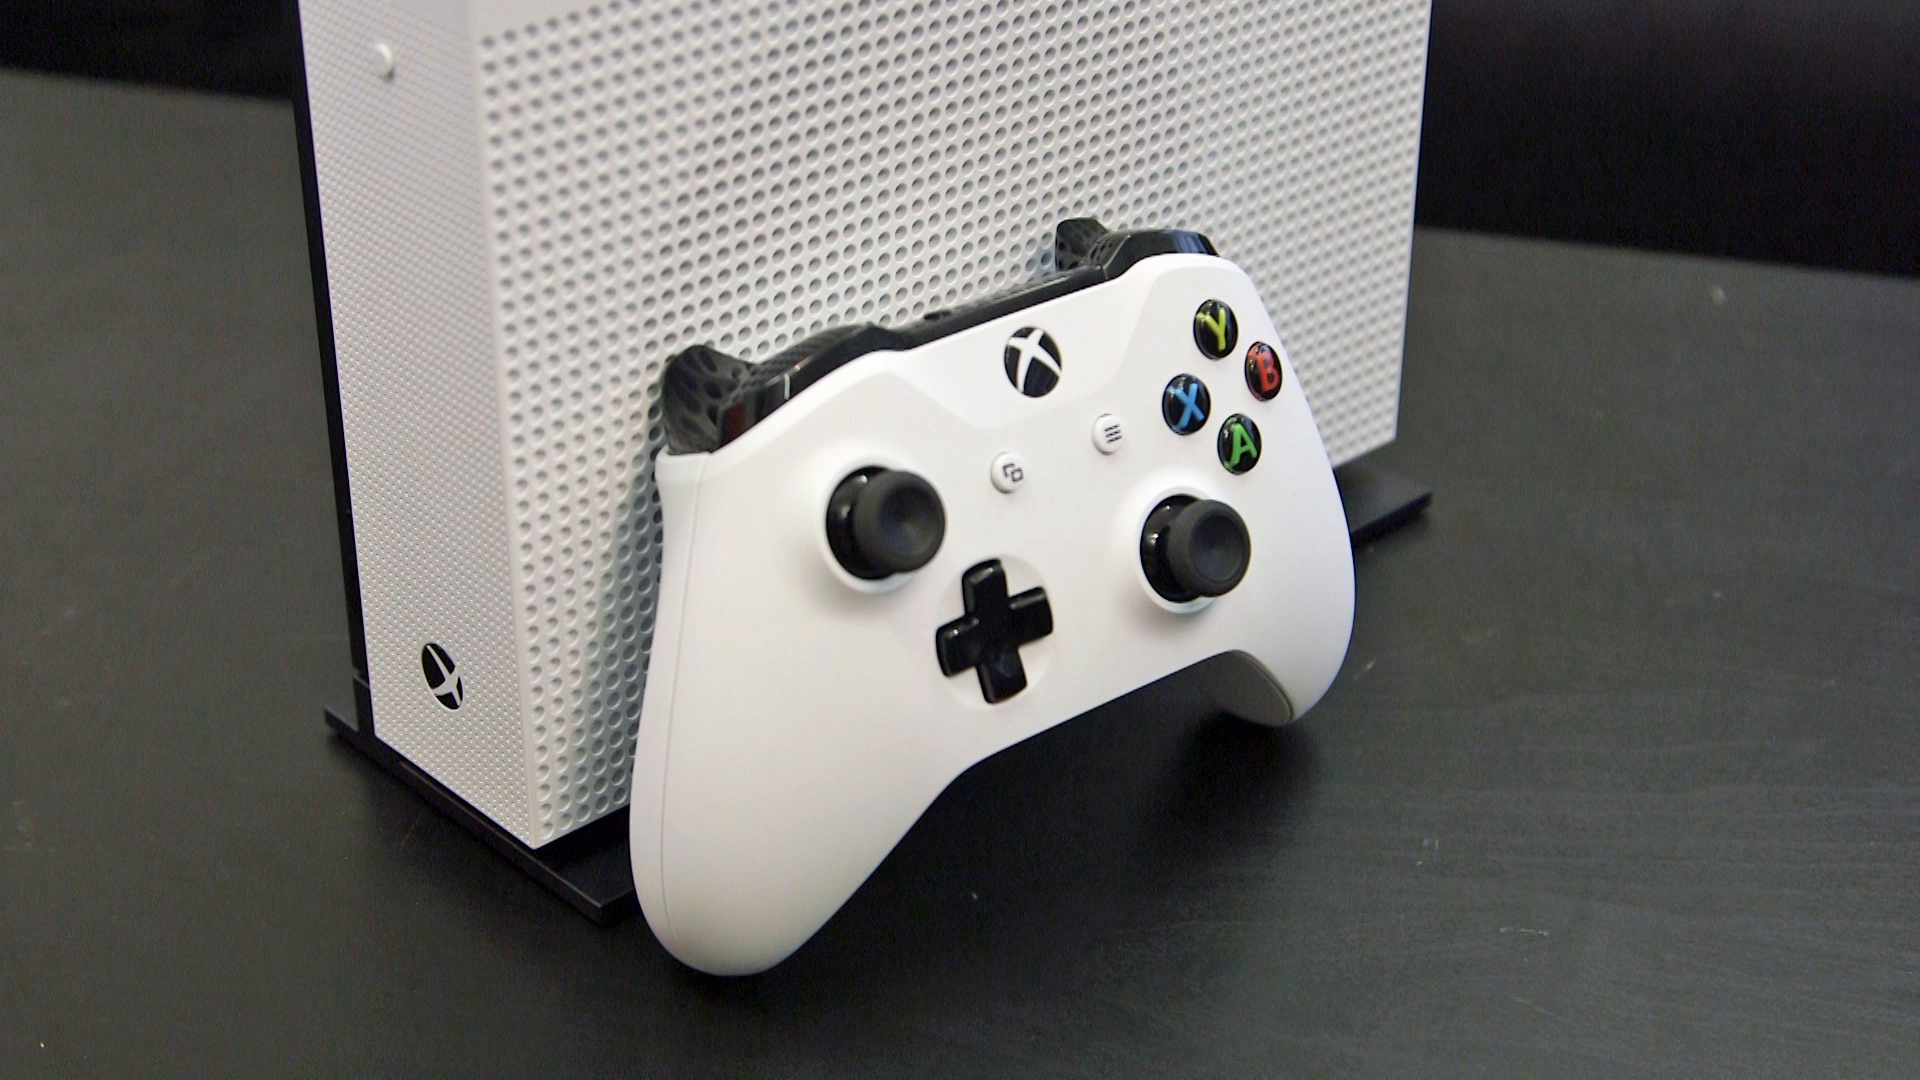 New Xbox One update lets you sign in with your favorite